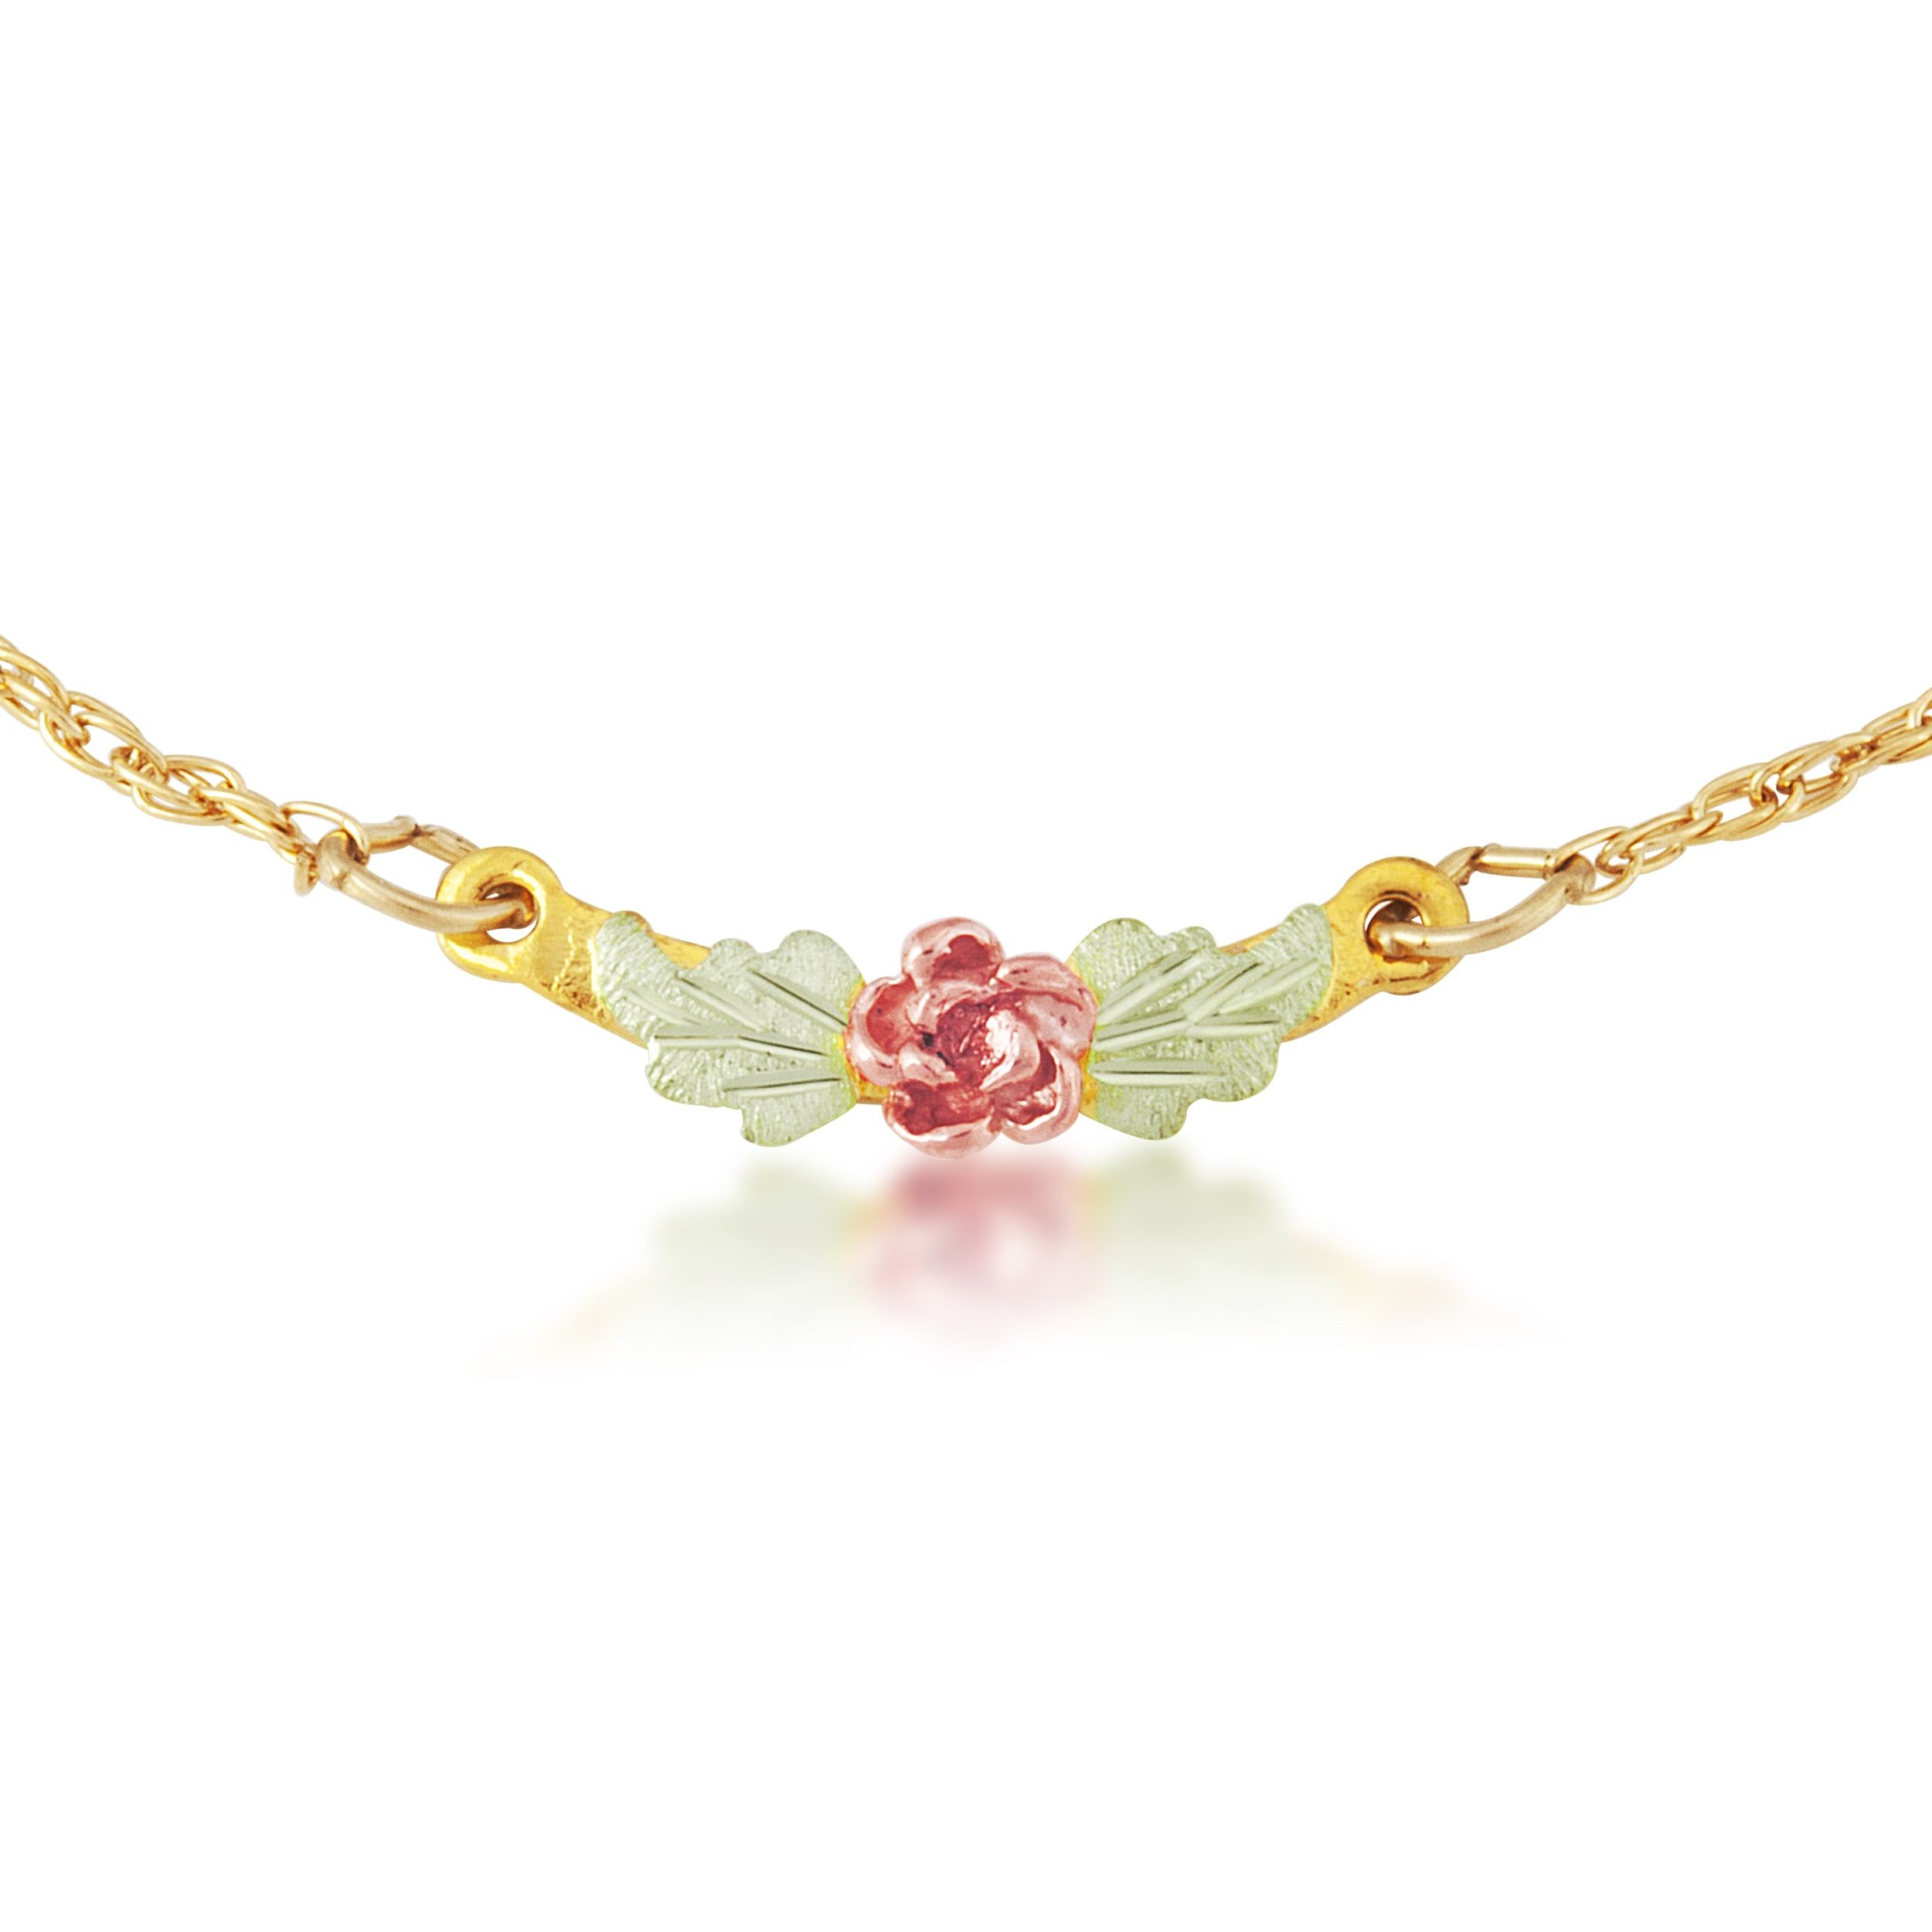 personalized rg rose bead necklace diamond rubystella anklet love cut gold choker solid